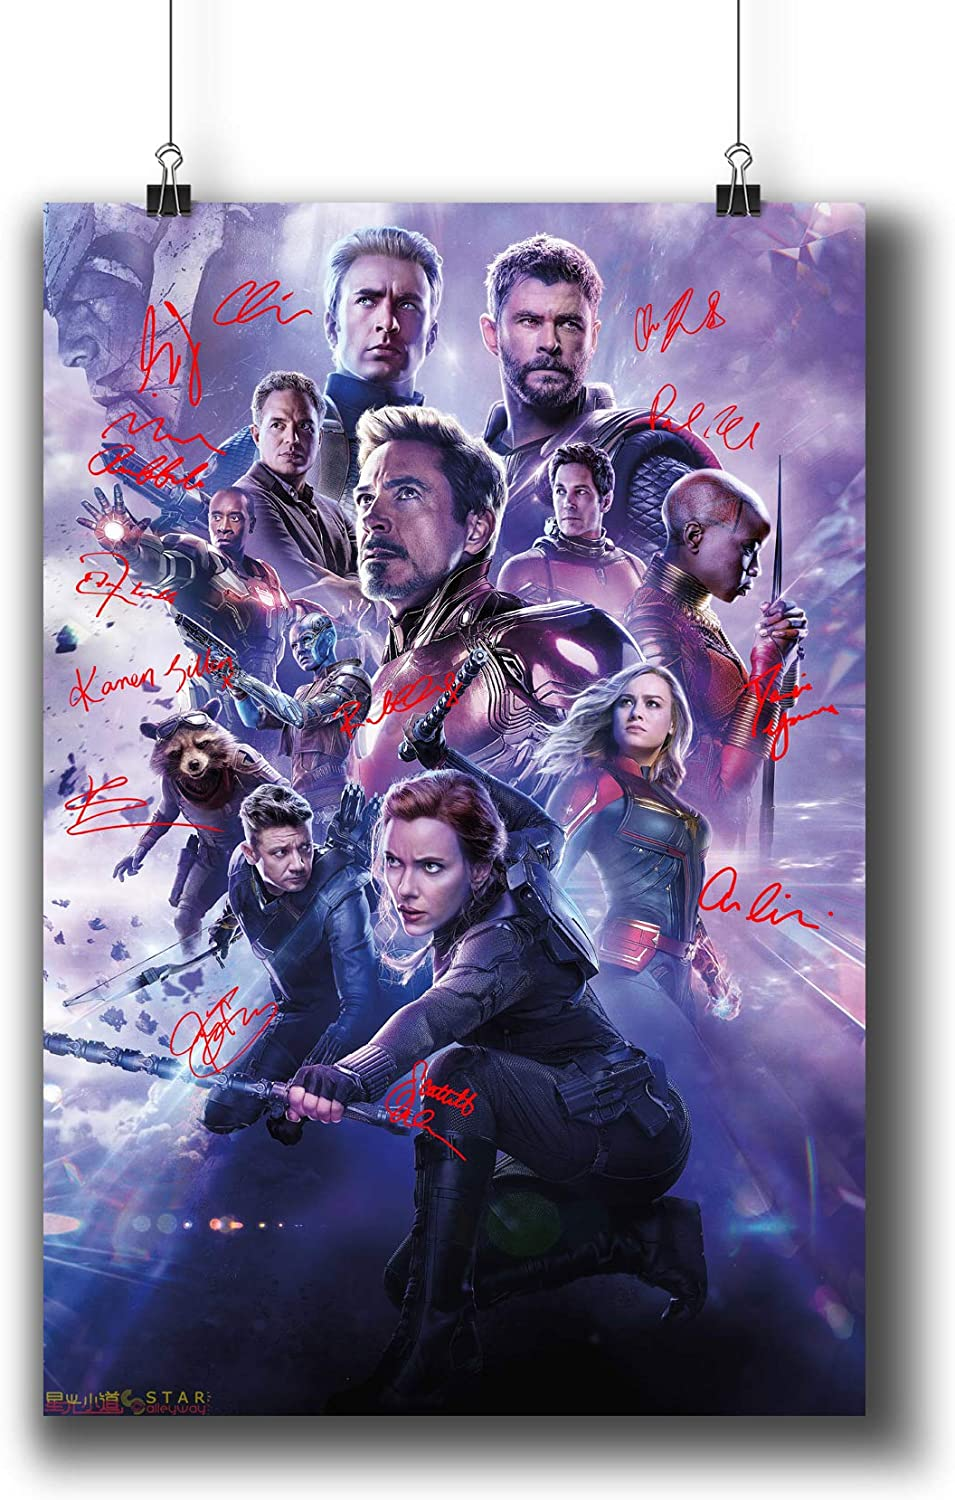 Amazon Com Avengers Endgame 2019 Movie Poster Small Prints 183 302 Reprint Signed Casts Wall Art Decor For Dorm Bedroom Living Room A4 8x12inch 21x29cm Wall Art